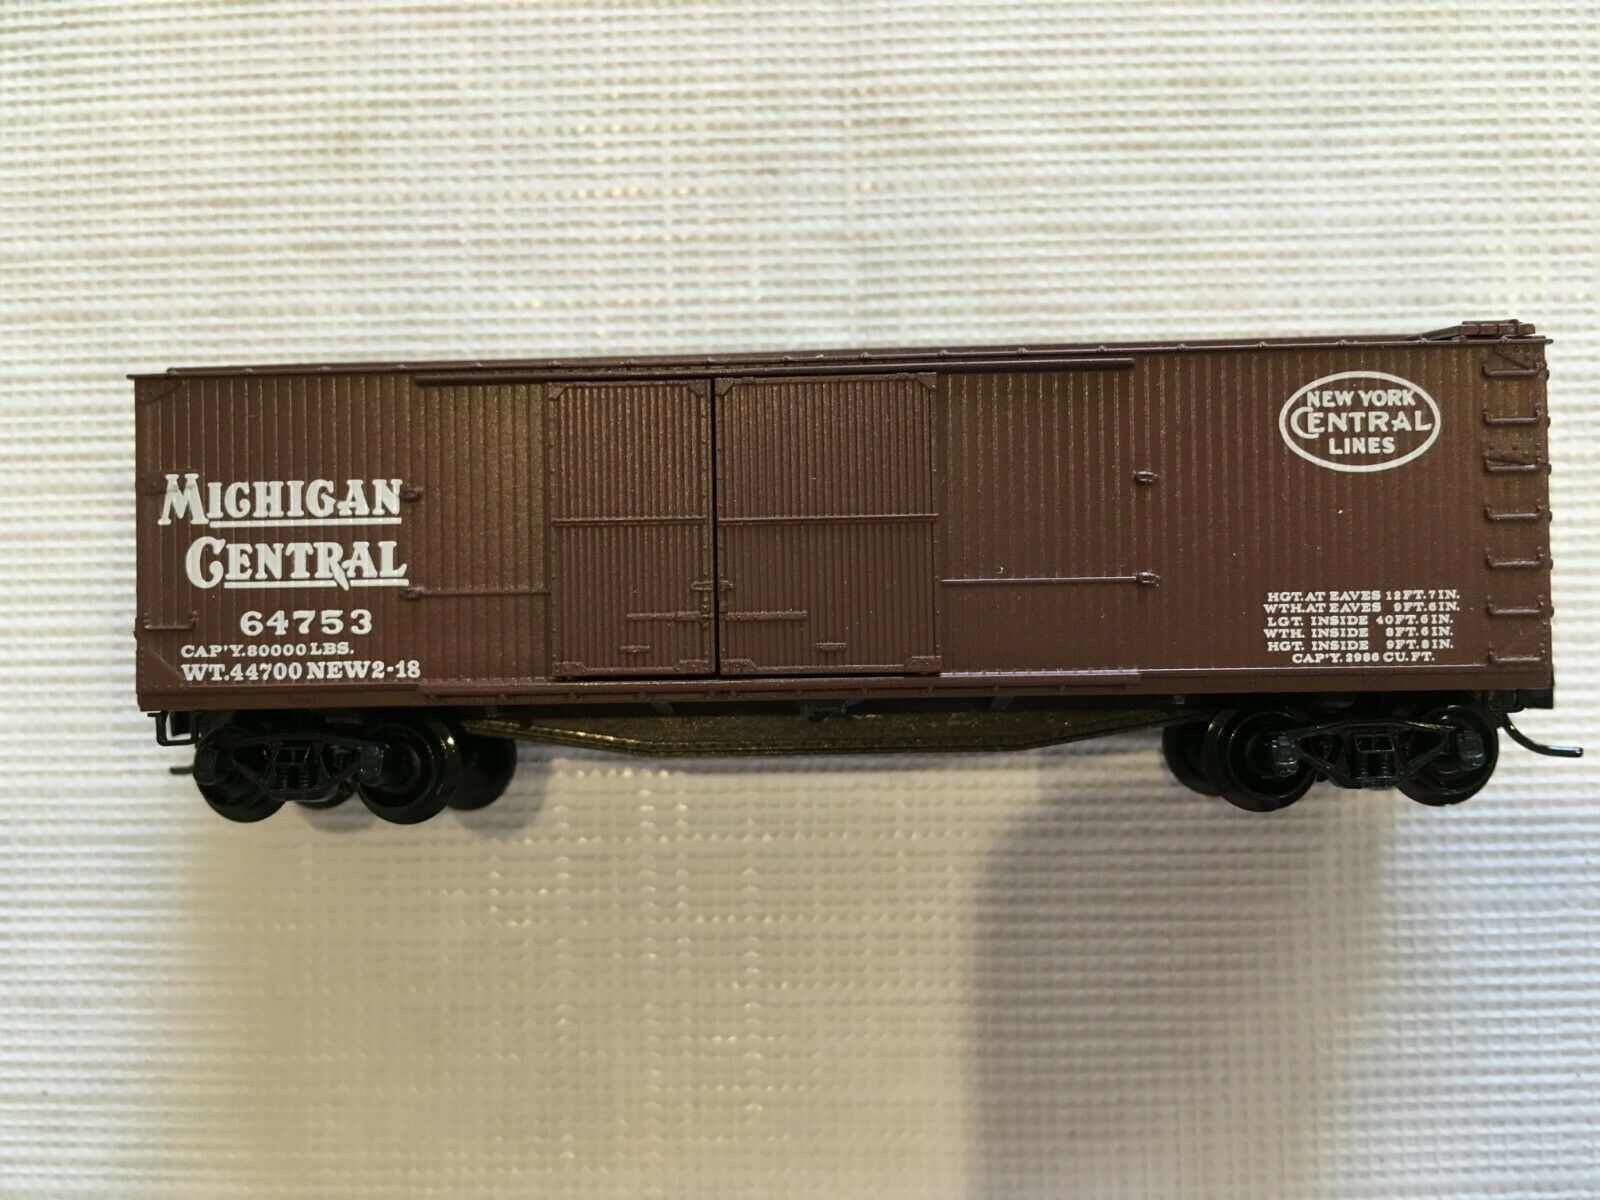 Primary image for Micro Trains 43060 N-Scale 40ft Wood Sheathed Boxcar, Michigan Central MC 62473